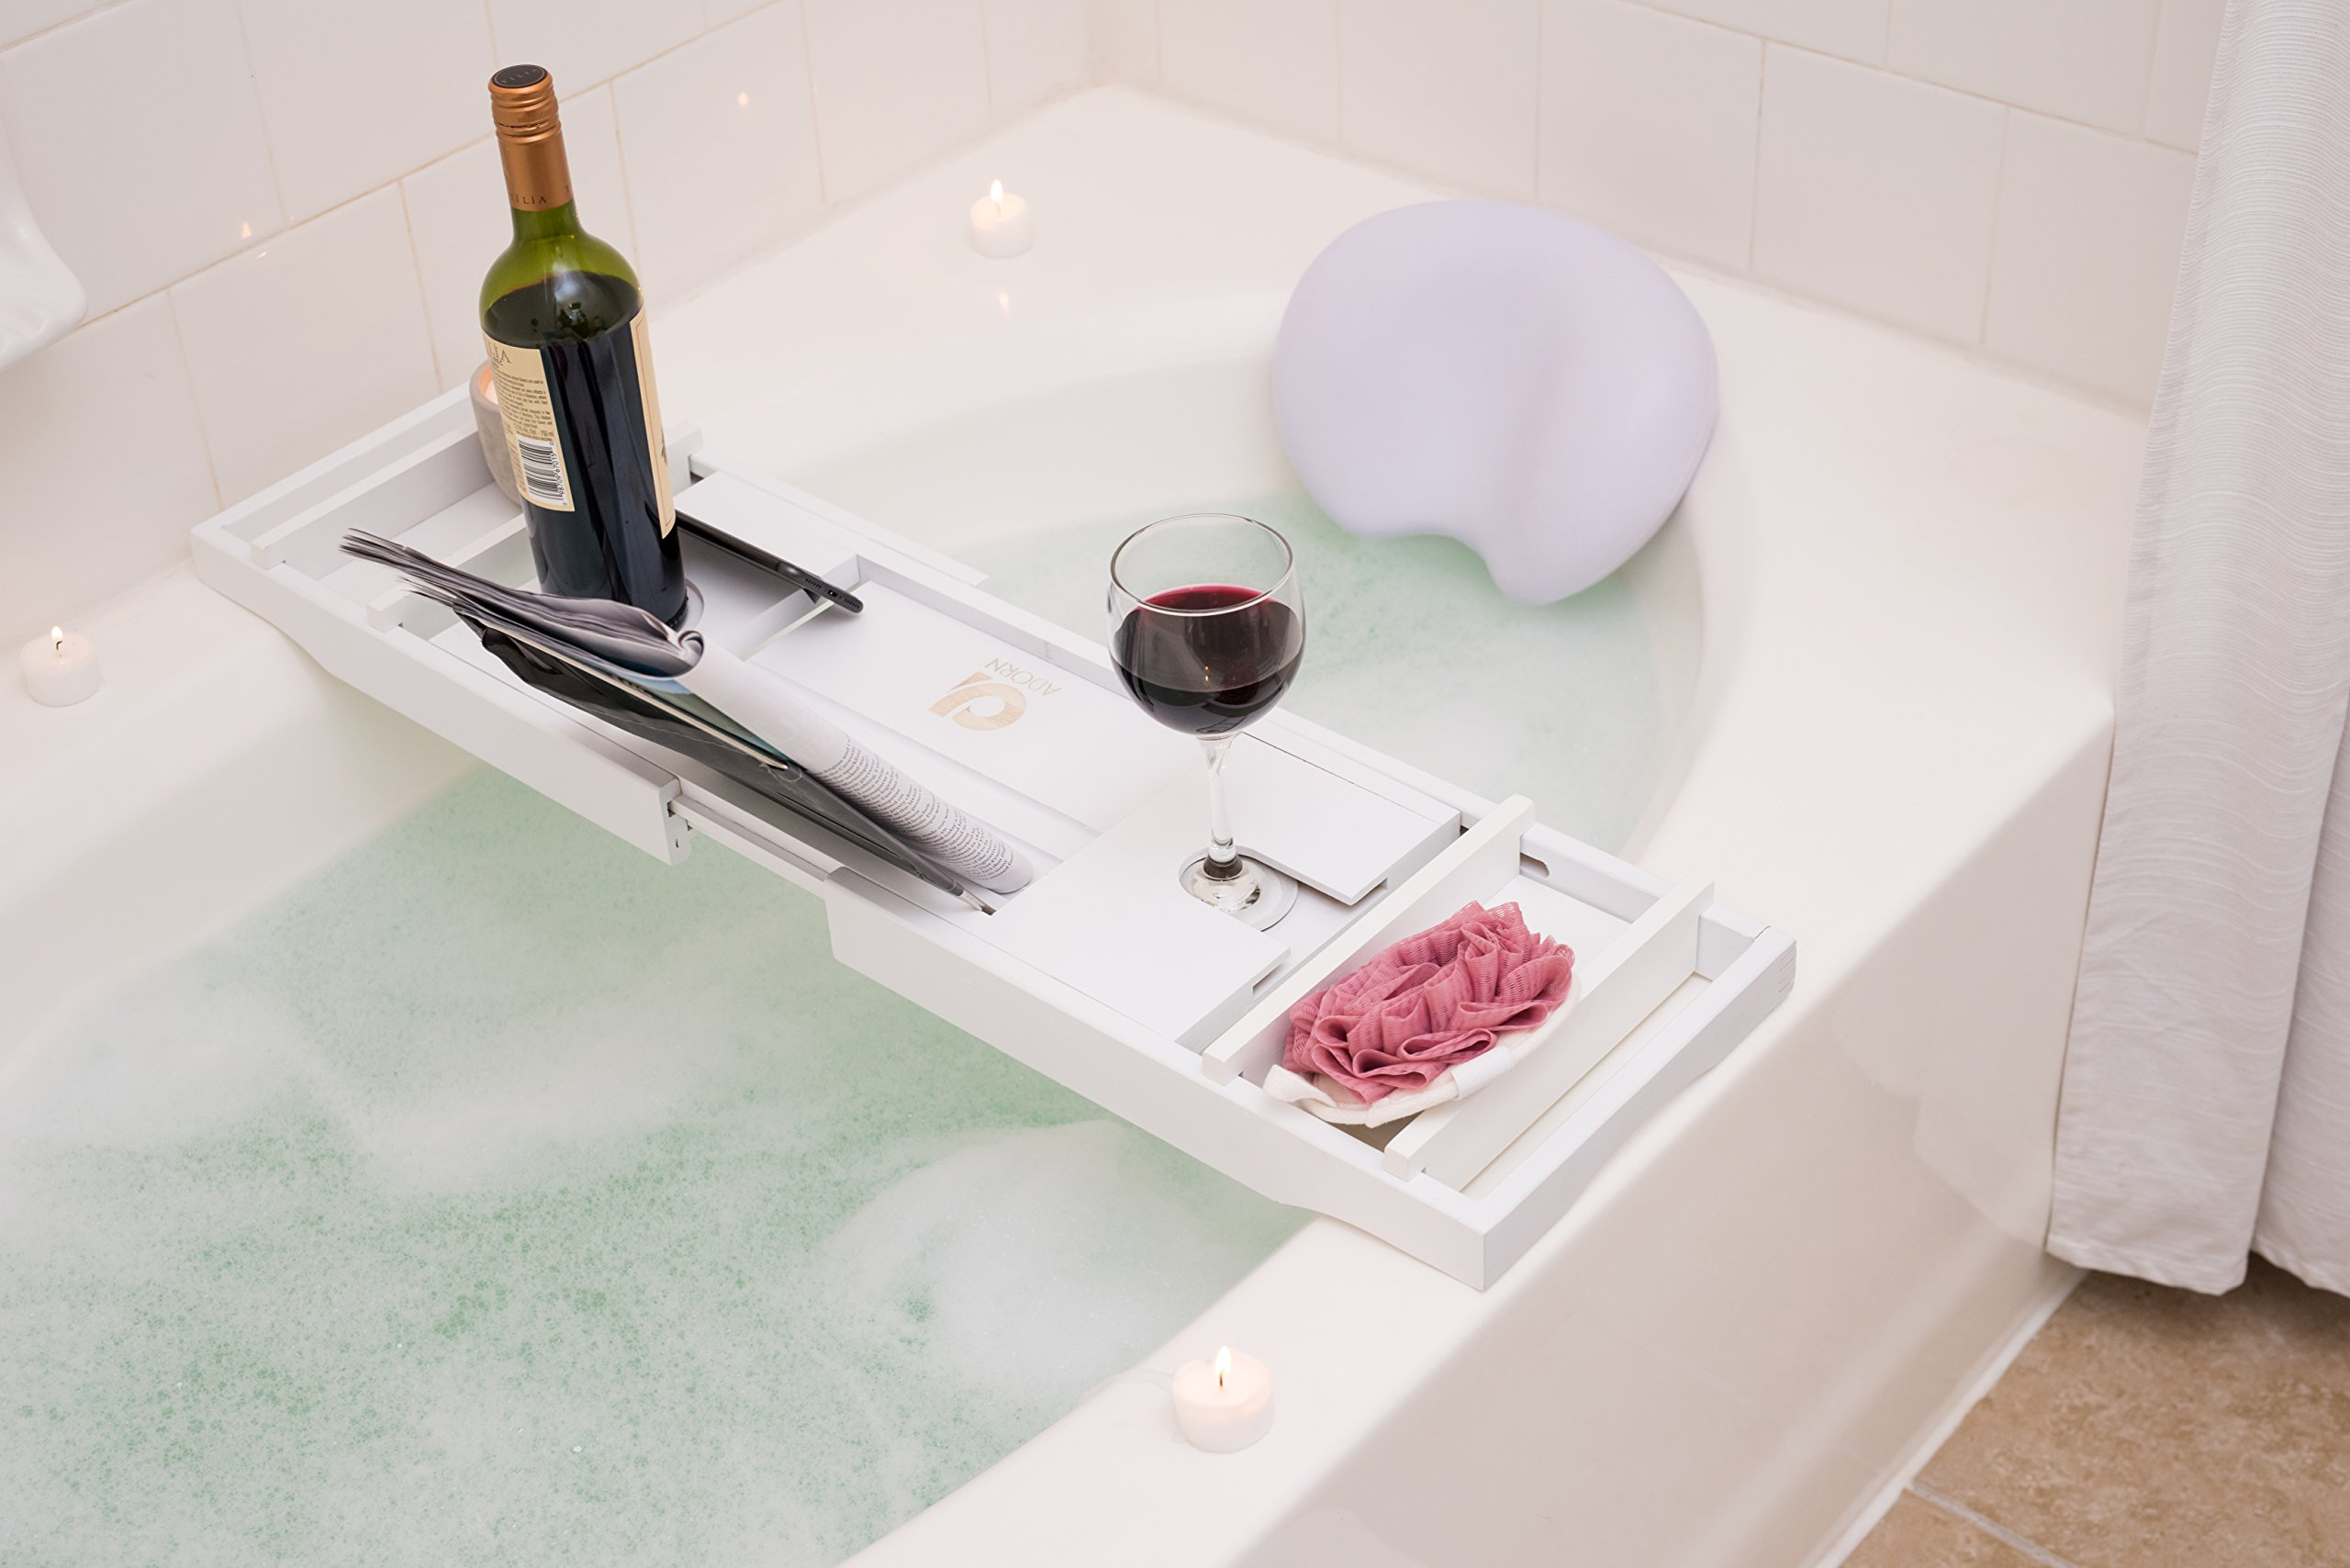 Adorn Home Essentials Bamboo Bathtub Caddy Tray with Wine and Cup Holder | Waterproof/Washable Bath Pillow with Suction Cup | One or Two Person Bath or Bed Adjustable Tray | Expands up to 43'' | White by Adorn Home Essentials (Image #3)